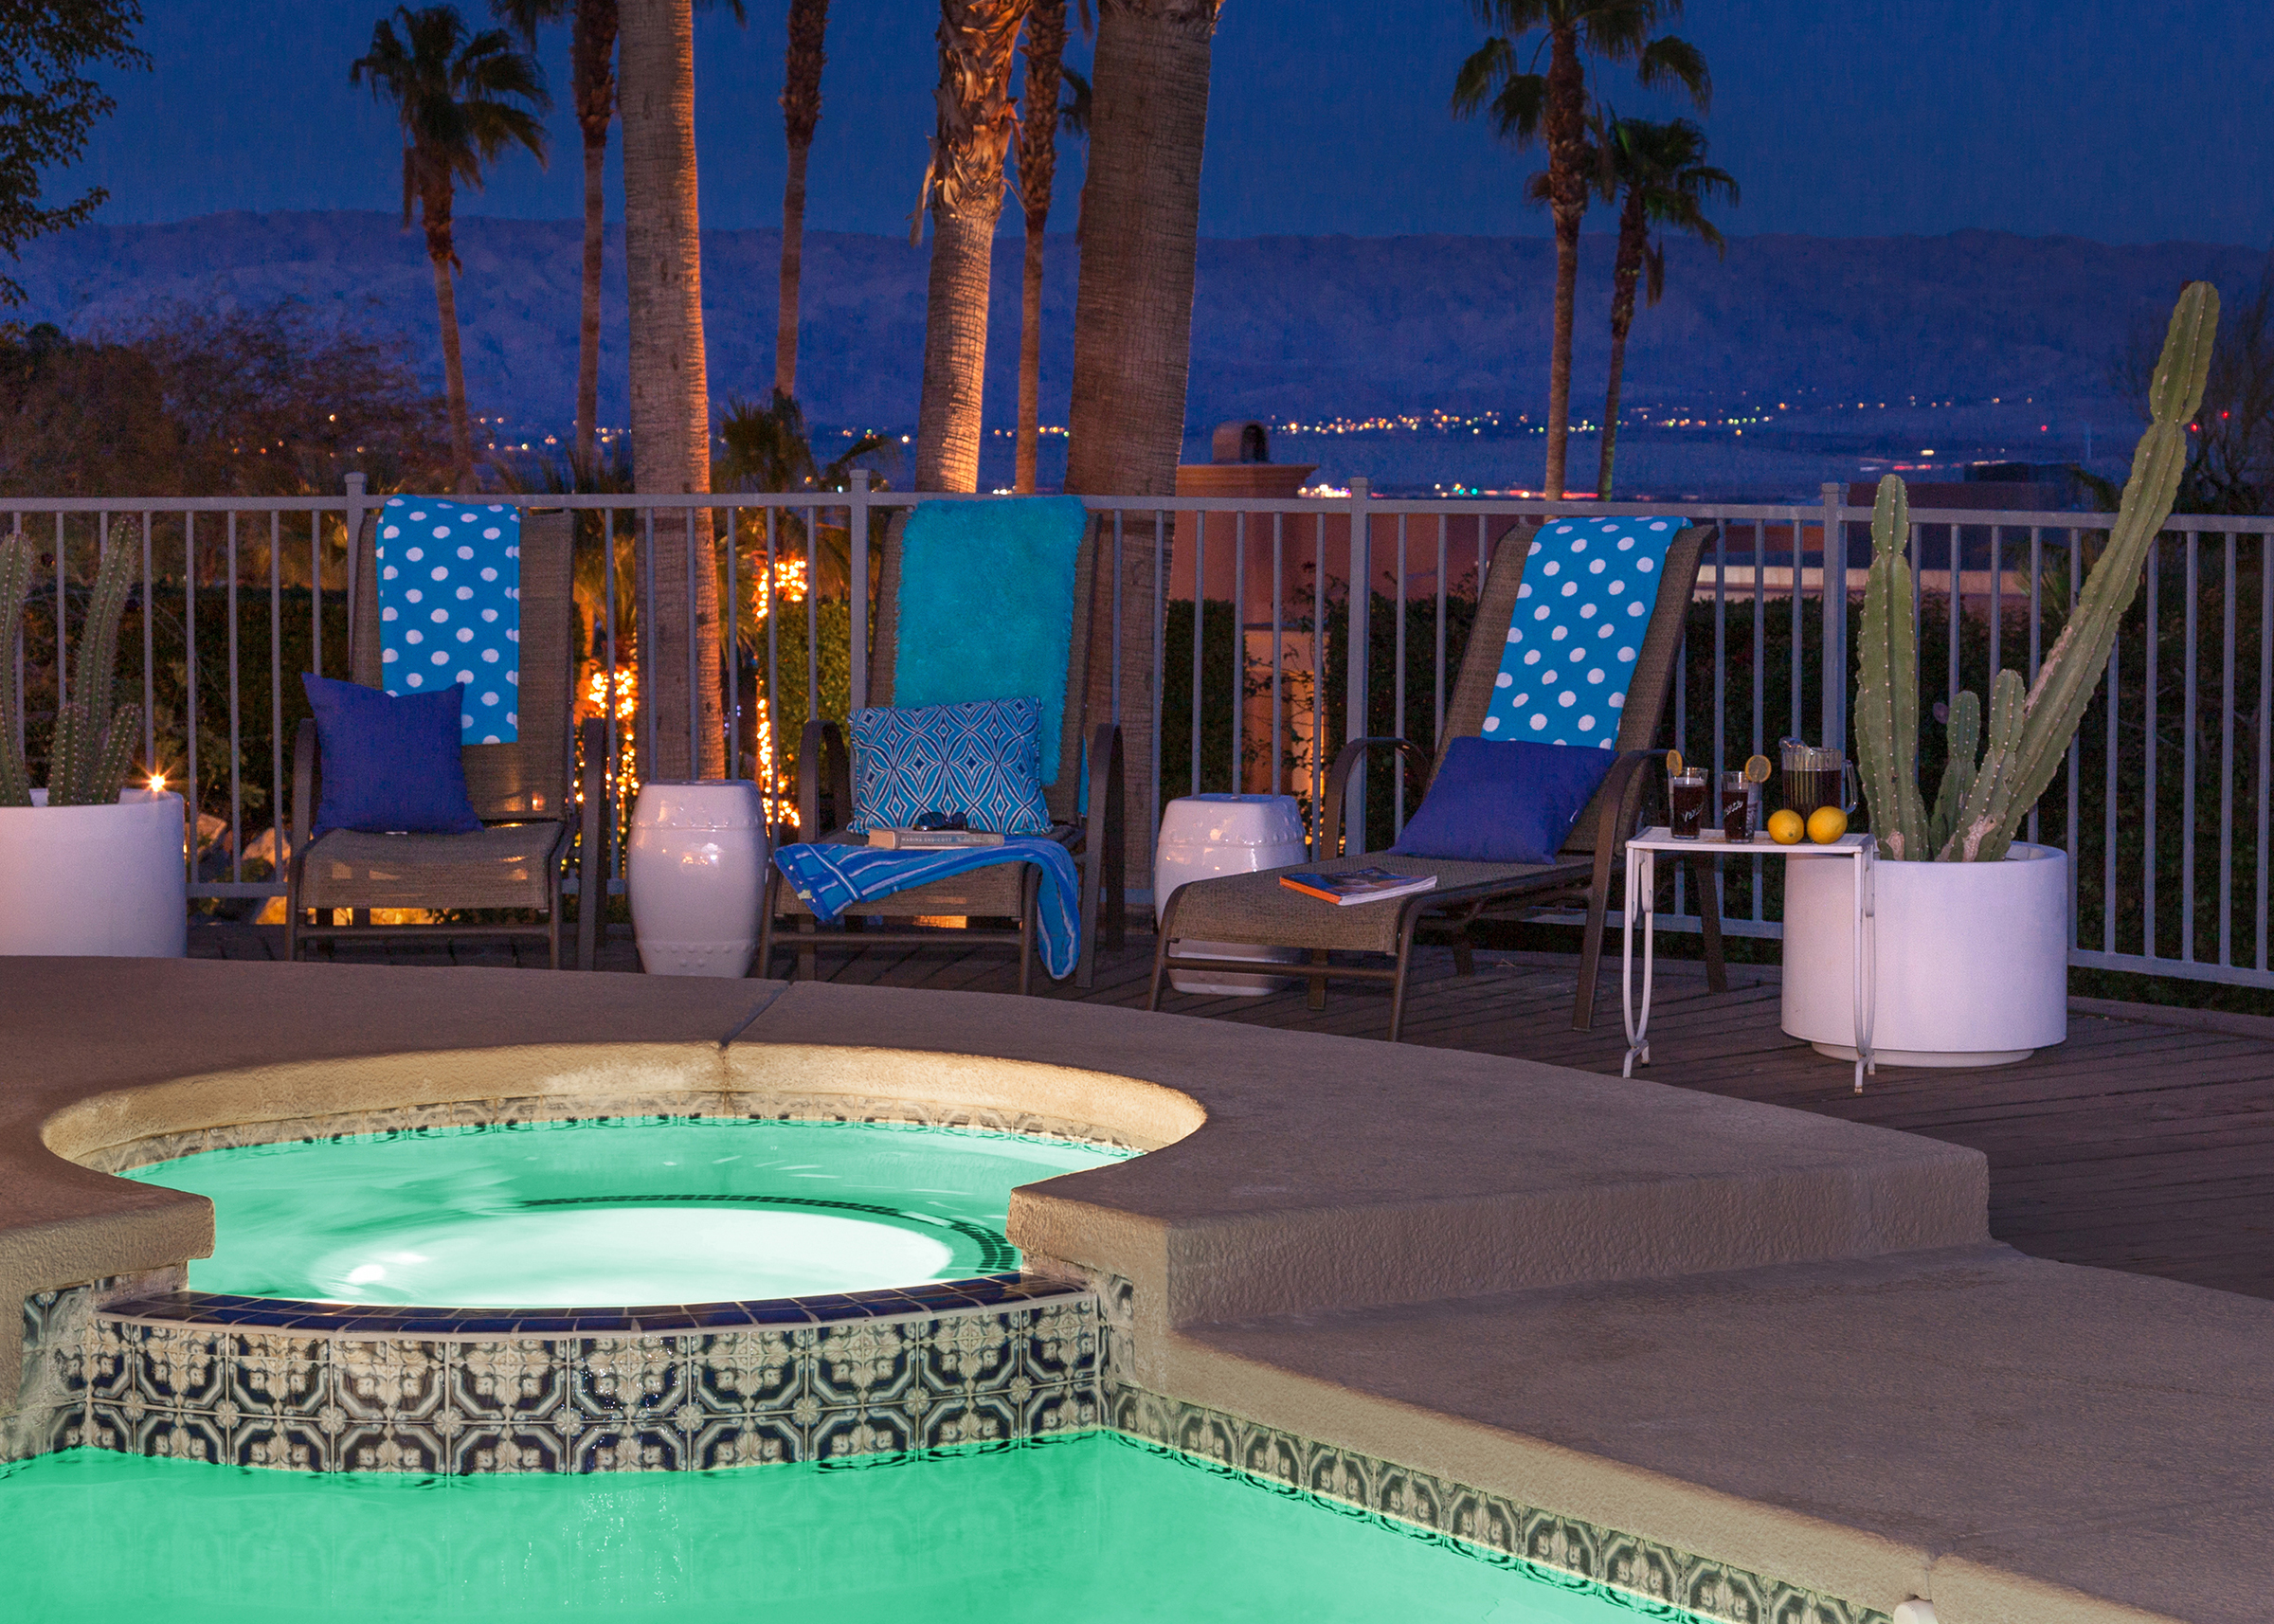 Palm Springs Vacation Home available thru Acme House Company